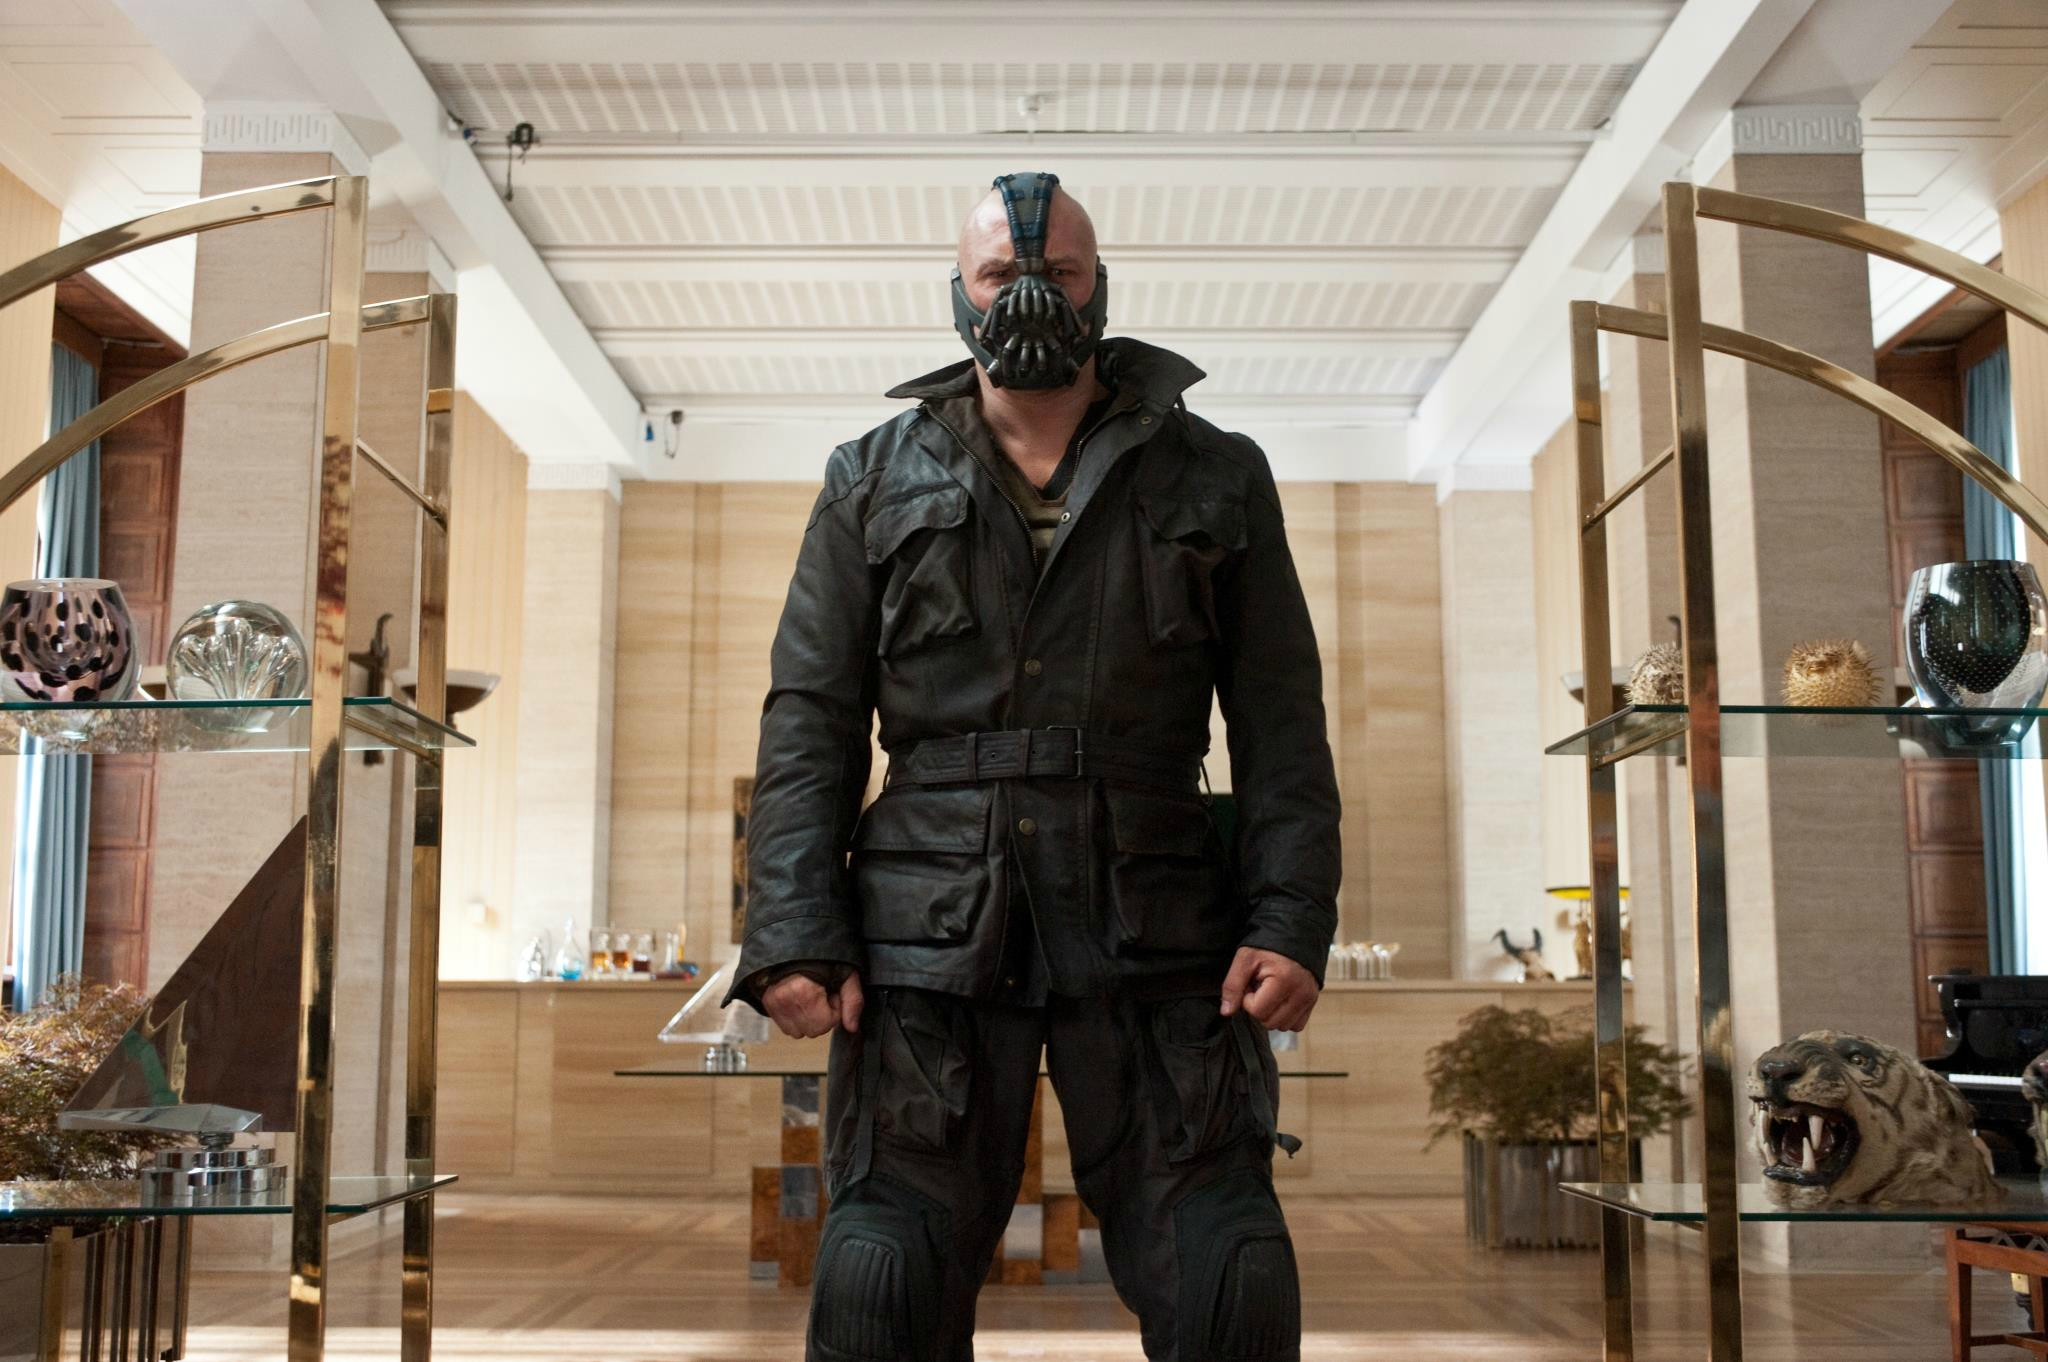 Bane Wallpapers Music Hq Bane Pictures 4k Wallpapers 2019